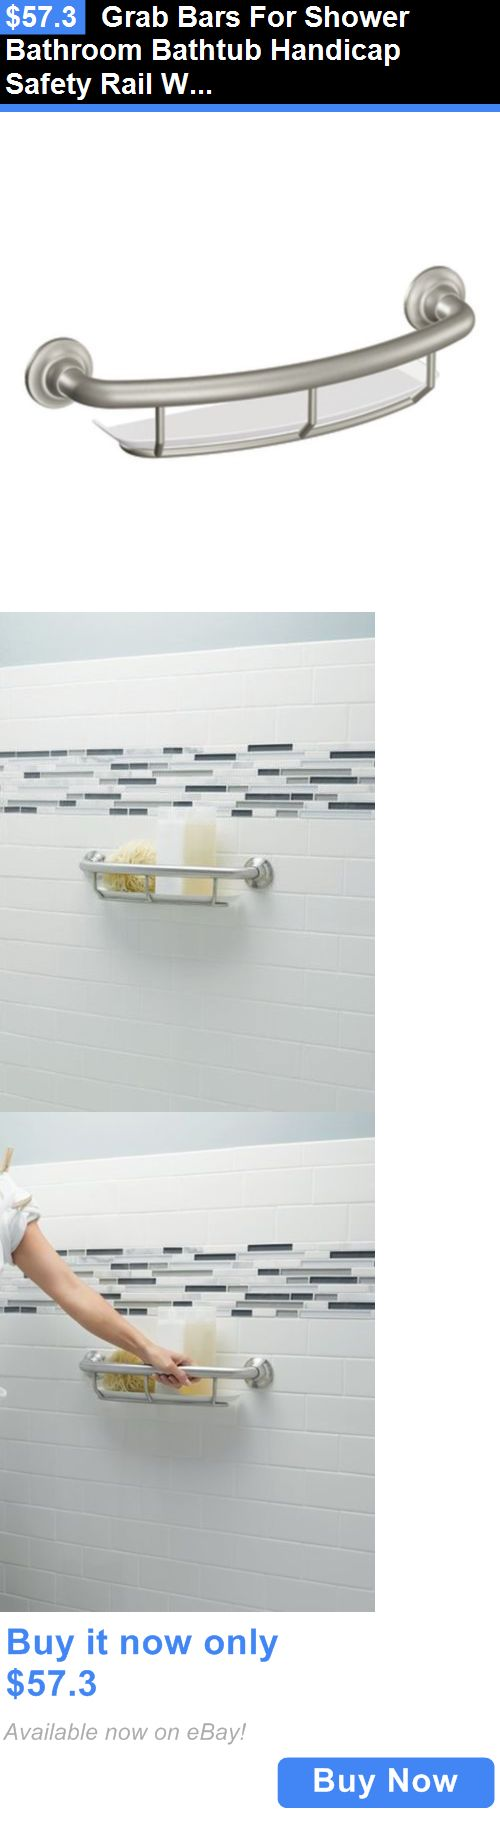 Handles and Rails: Grab Bars For Shower Bathroom Bathtub Handicap Safety Rail With Shelf Grip BUY IT NOW ONLY: $57.3